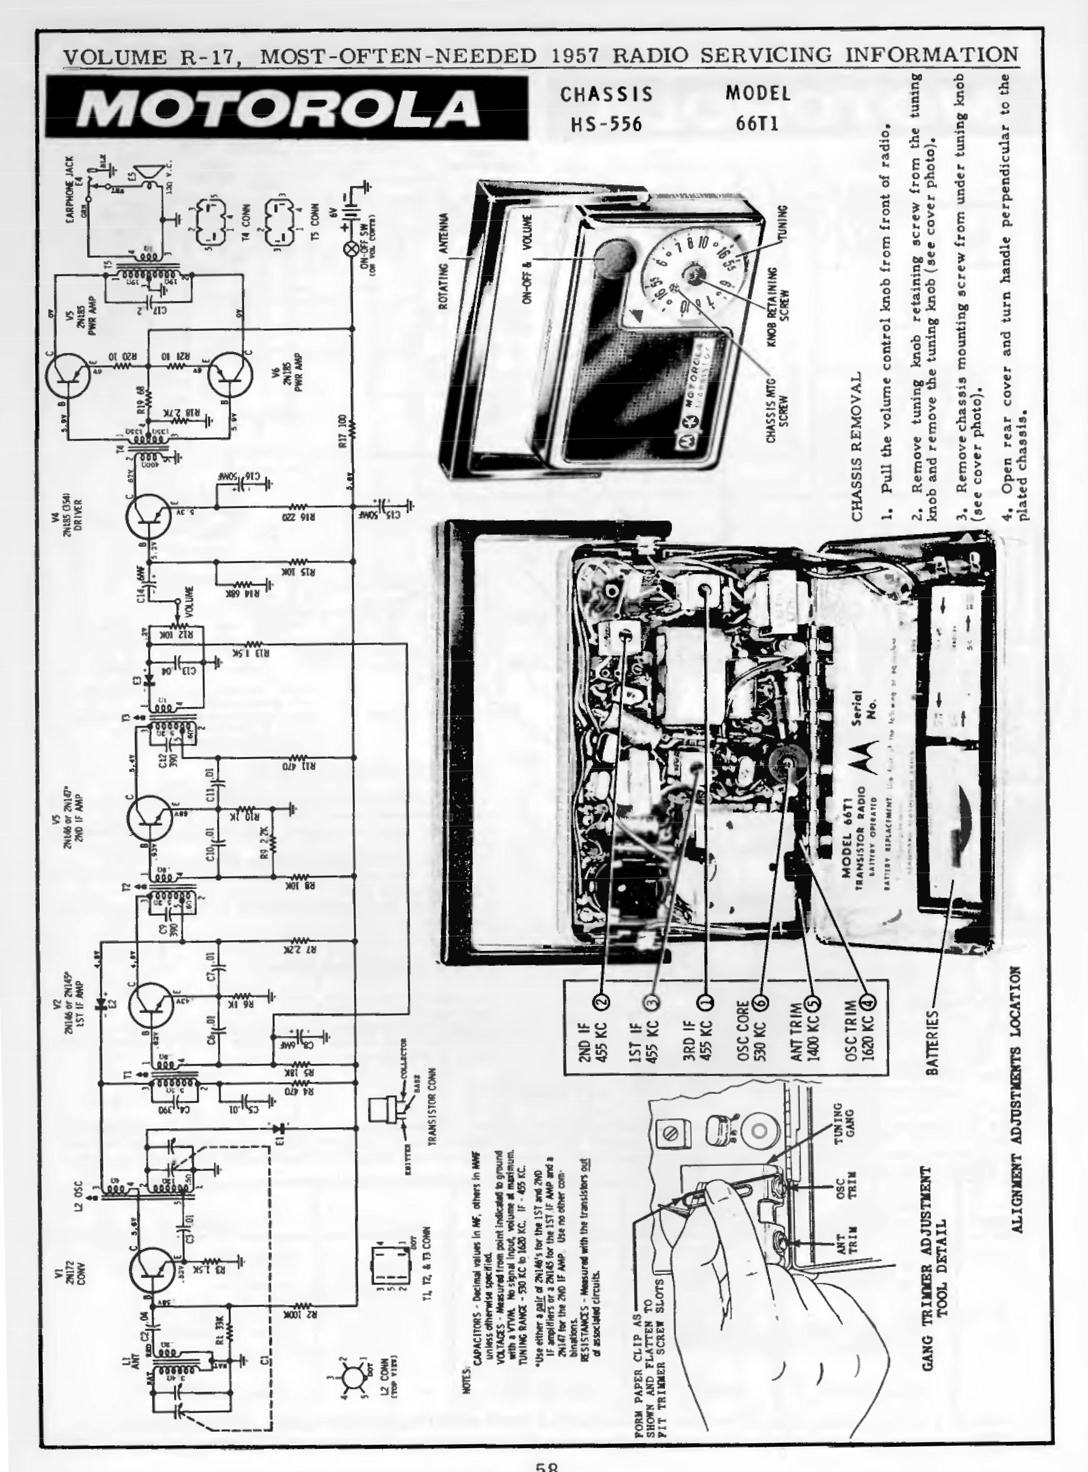 Jeep Cherokee Fuse Box Diagram Depiction Splendid. Jeep